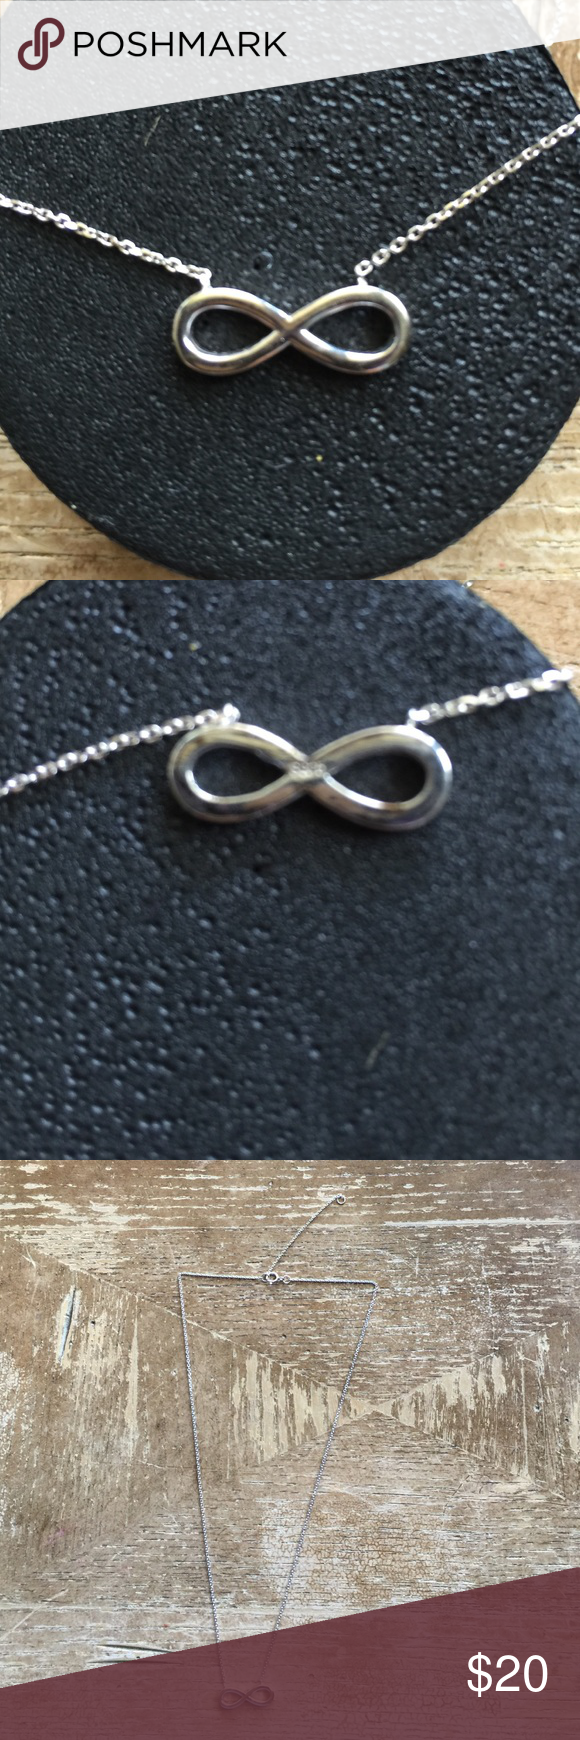 Necklace Sterling silver solid 925❤️ Necklace Sterling silver solid 925❤️ Jewelry Necklaces